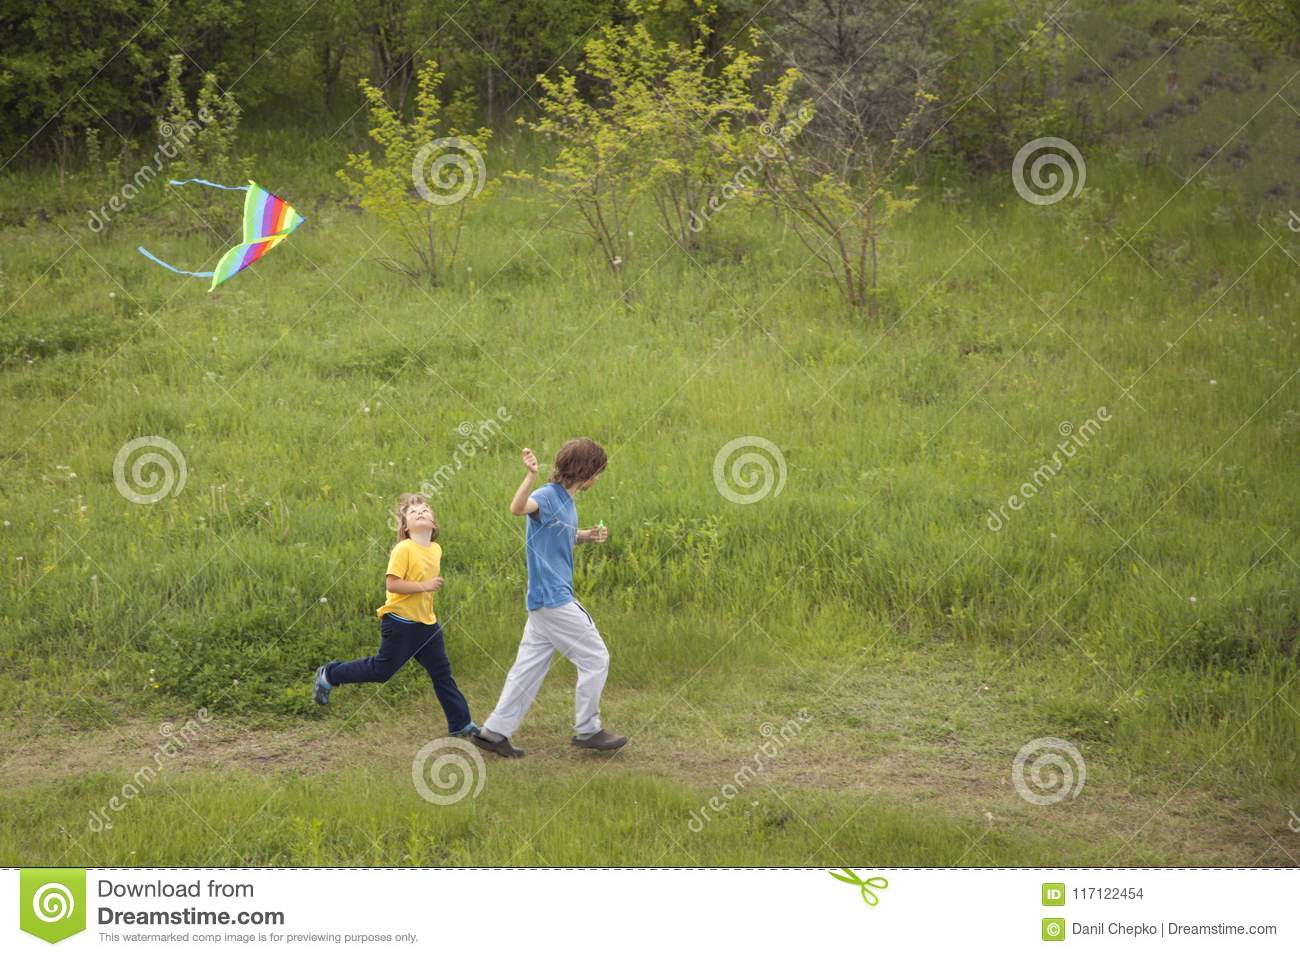 Children run playing kite on summer meadow